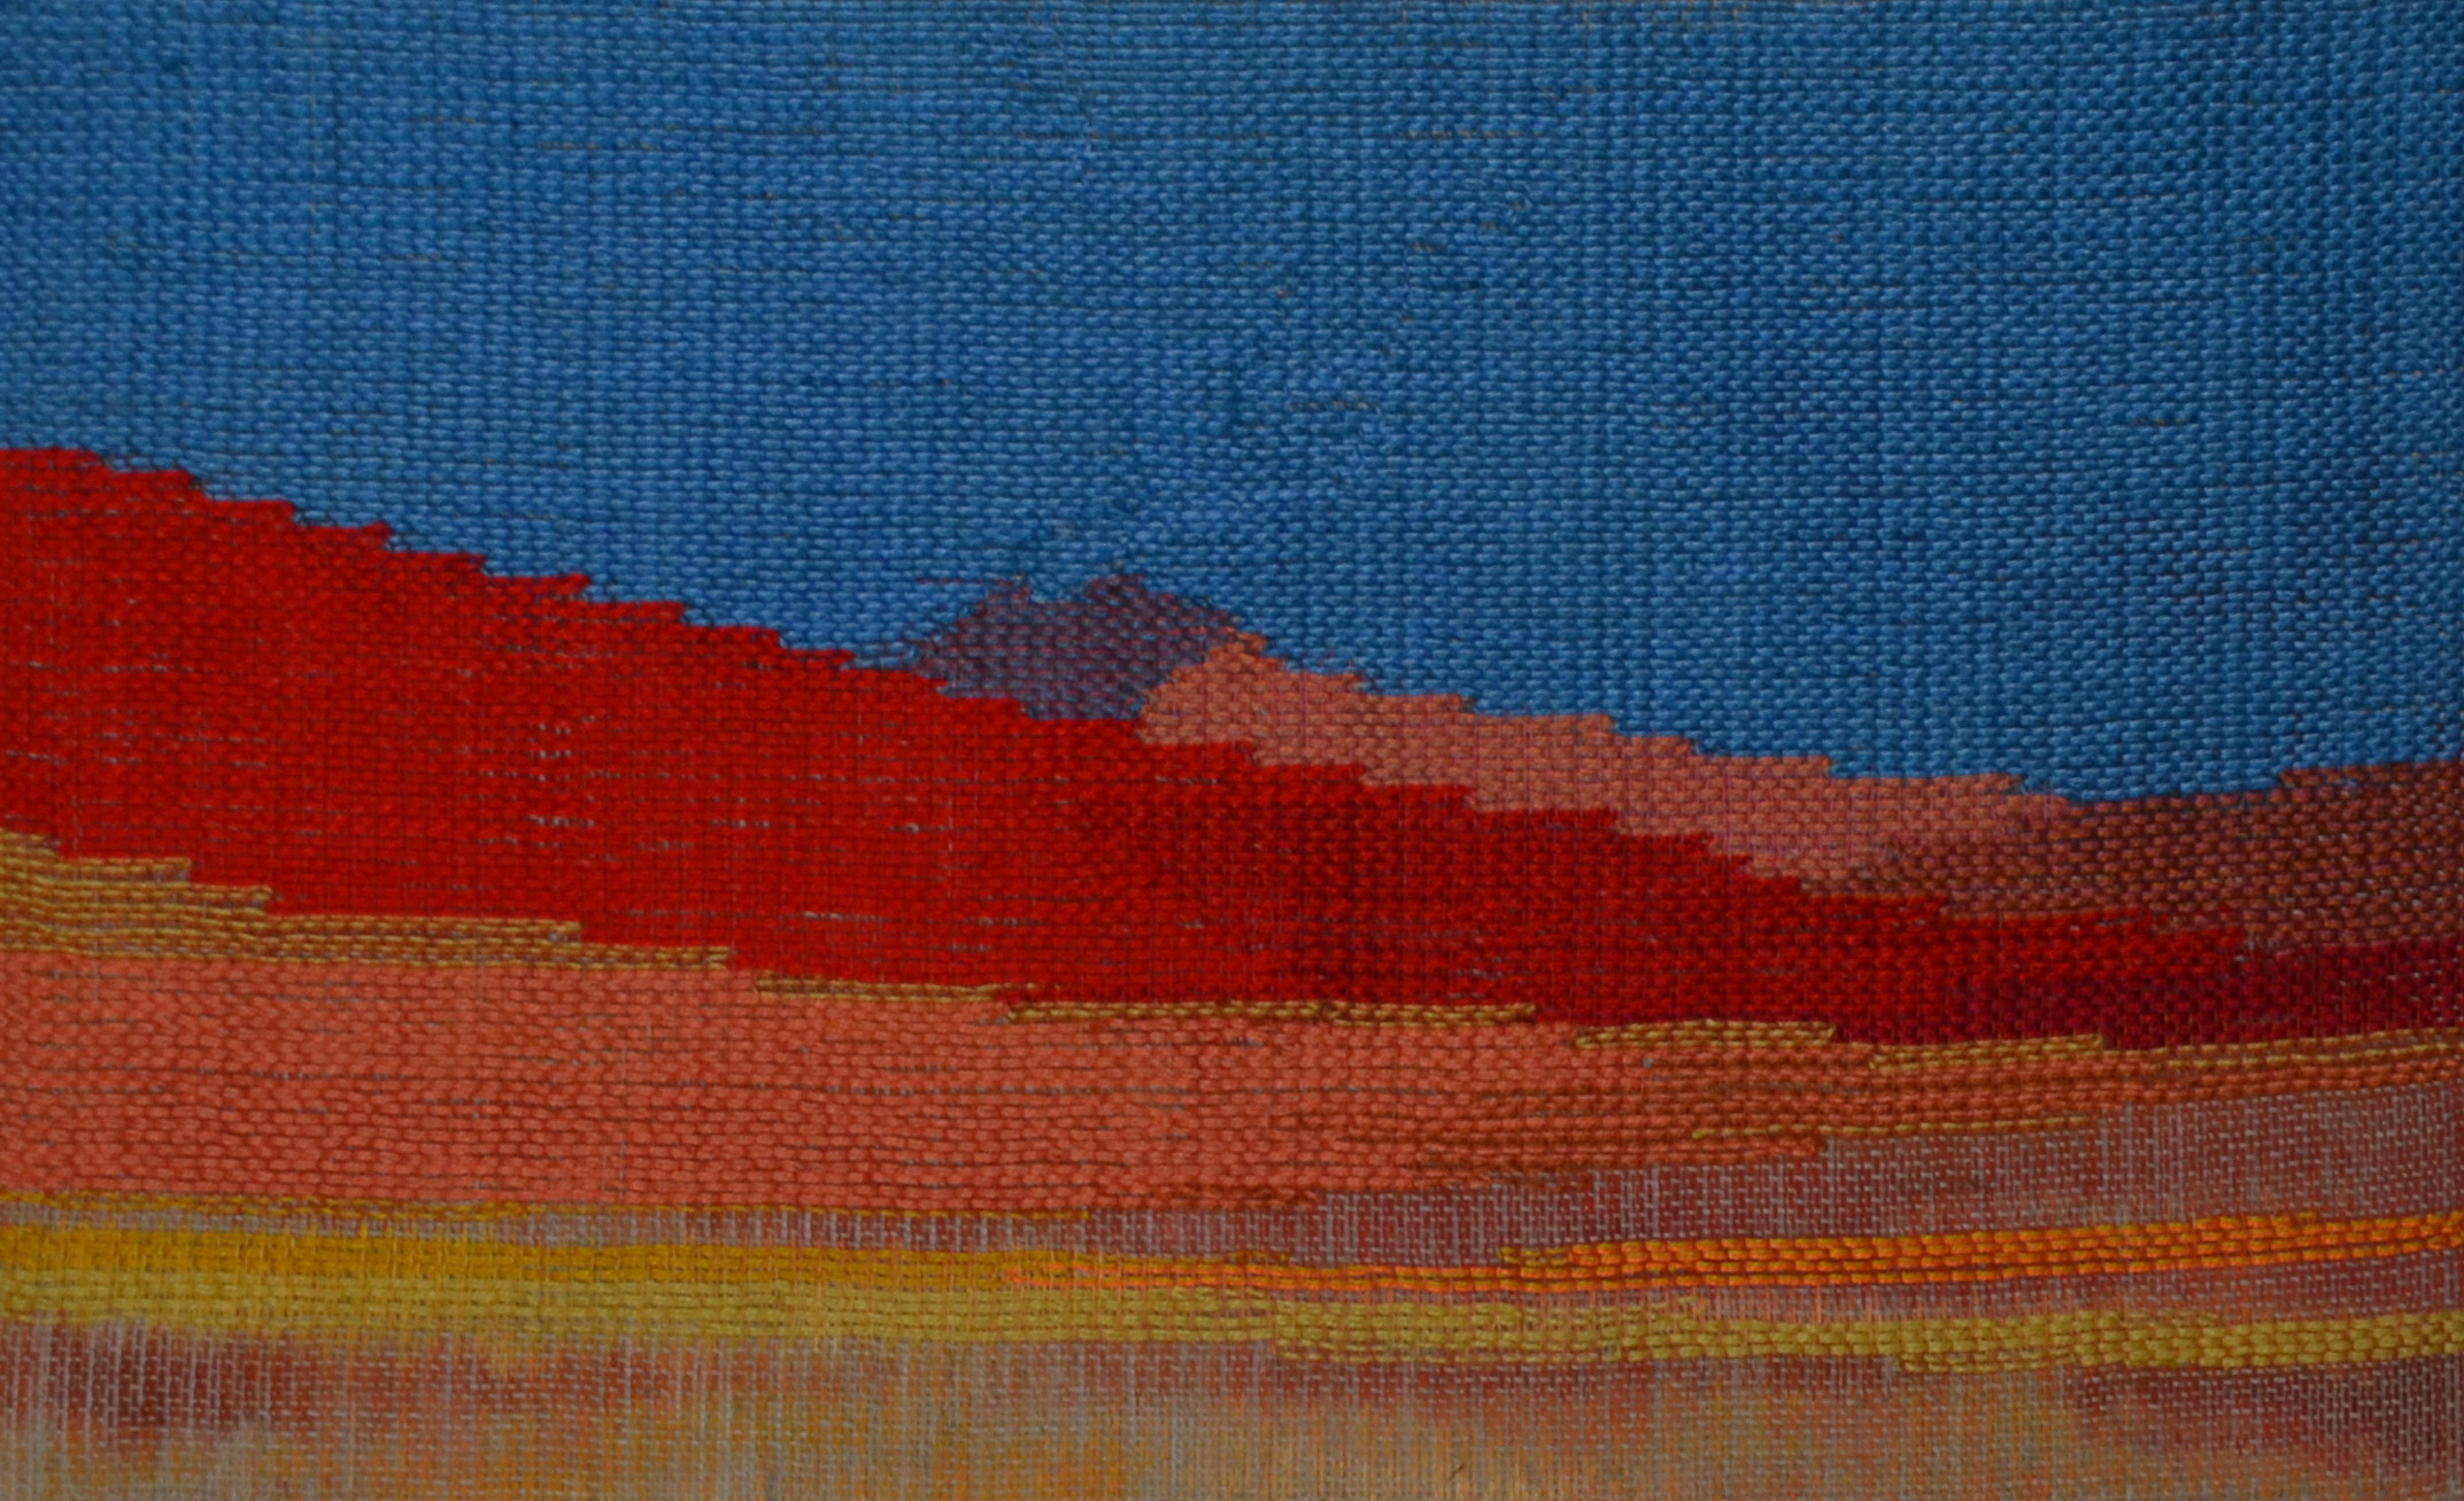 Namibia Sand Dunes, Africa, inlay woven on painted lace linen warp